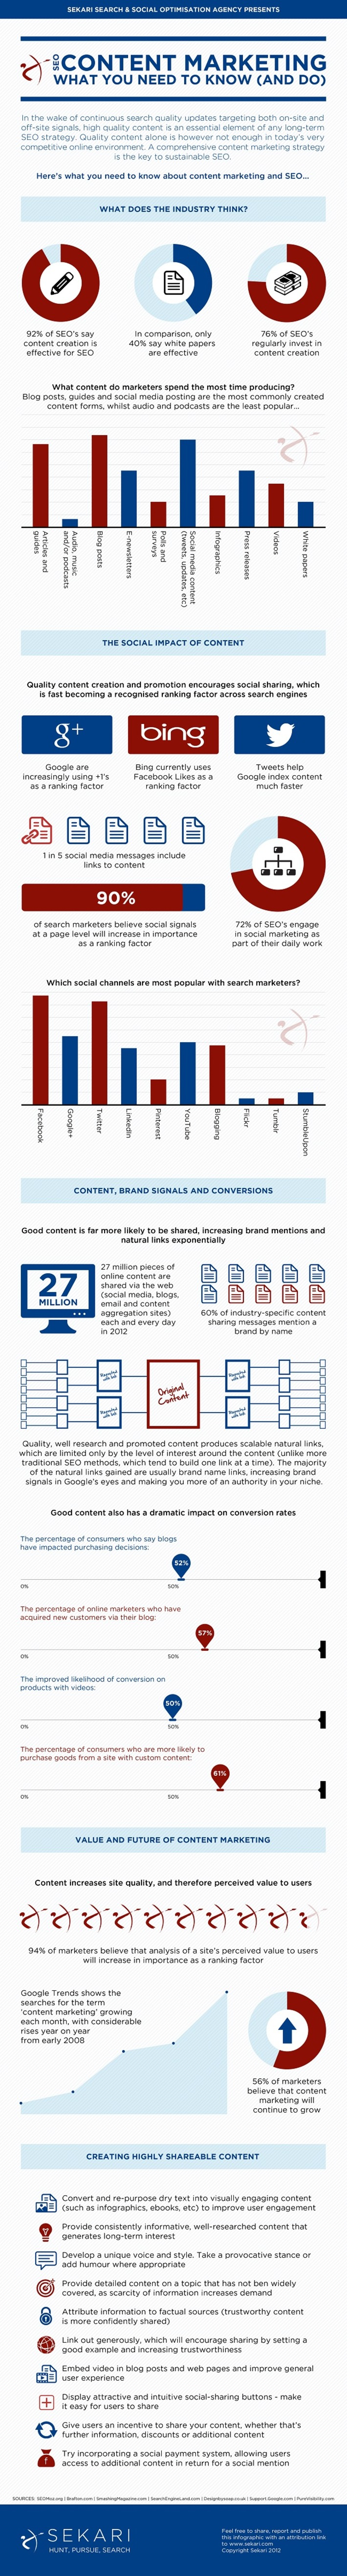 The Importance of Content Marketing When Building SEO Strategies [Infographic]   A Marketing Mix   Scoop.it